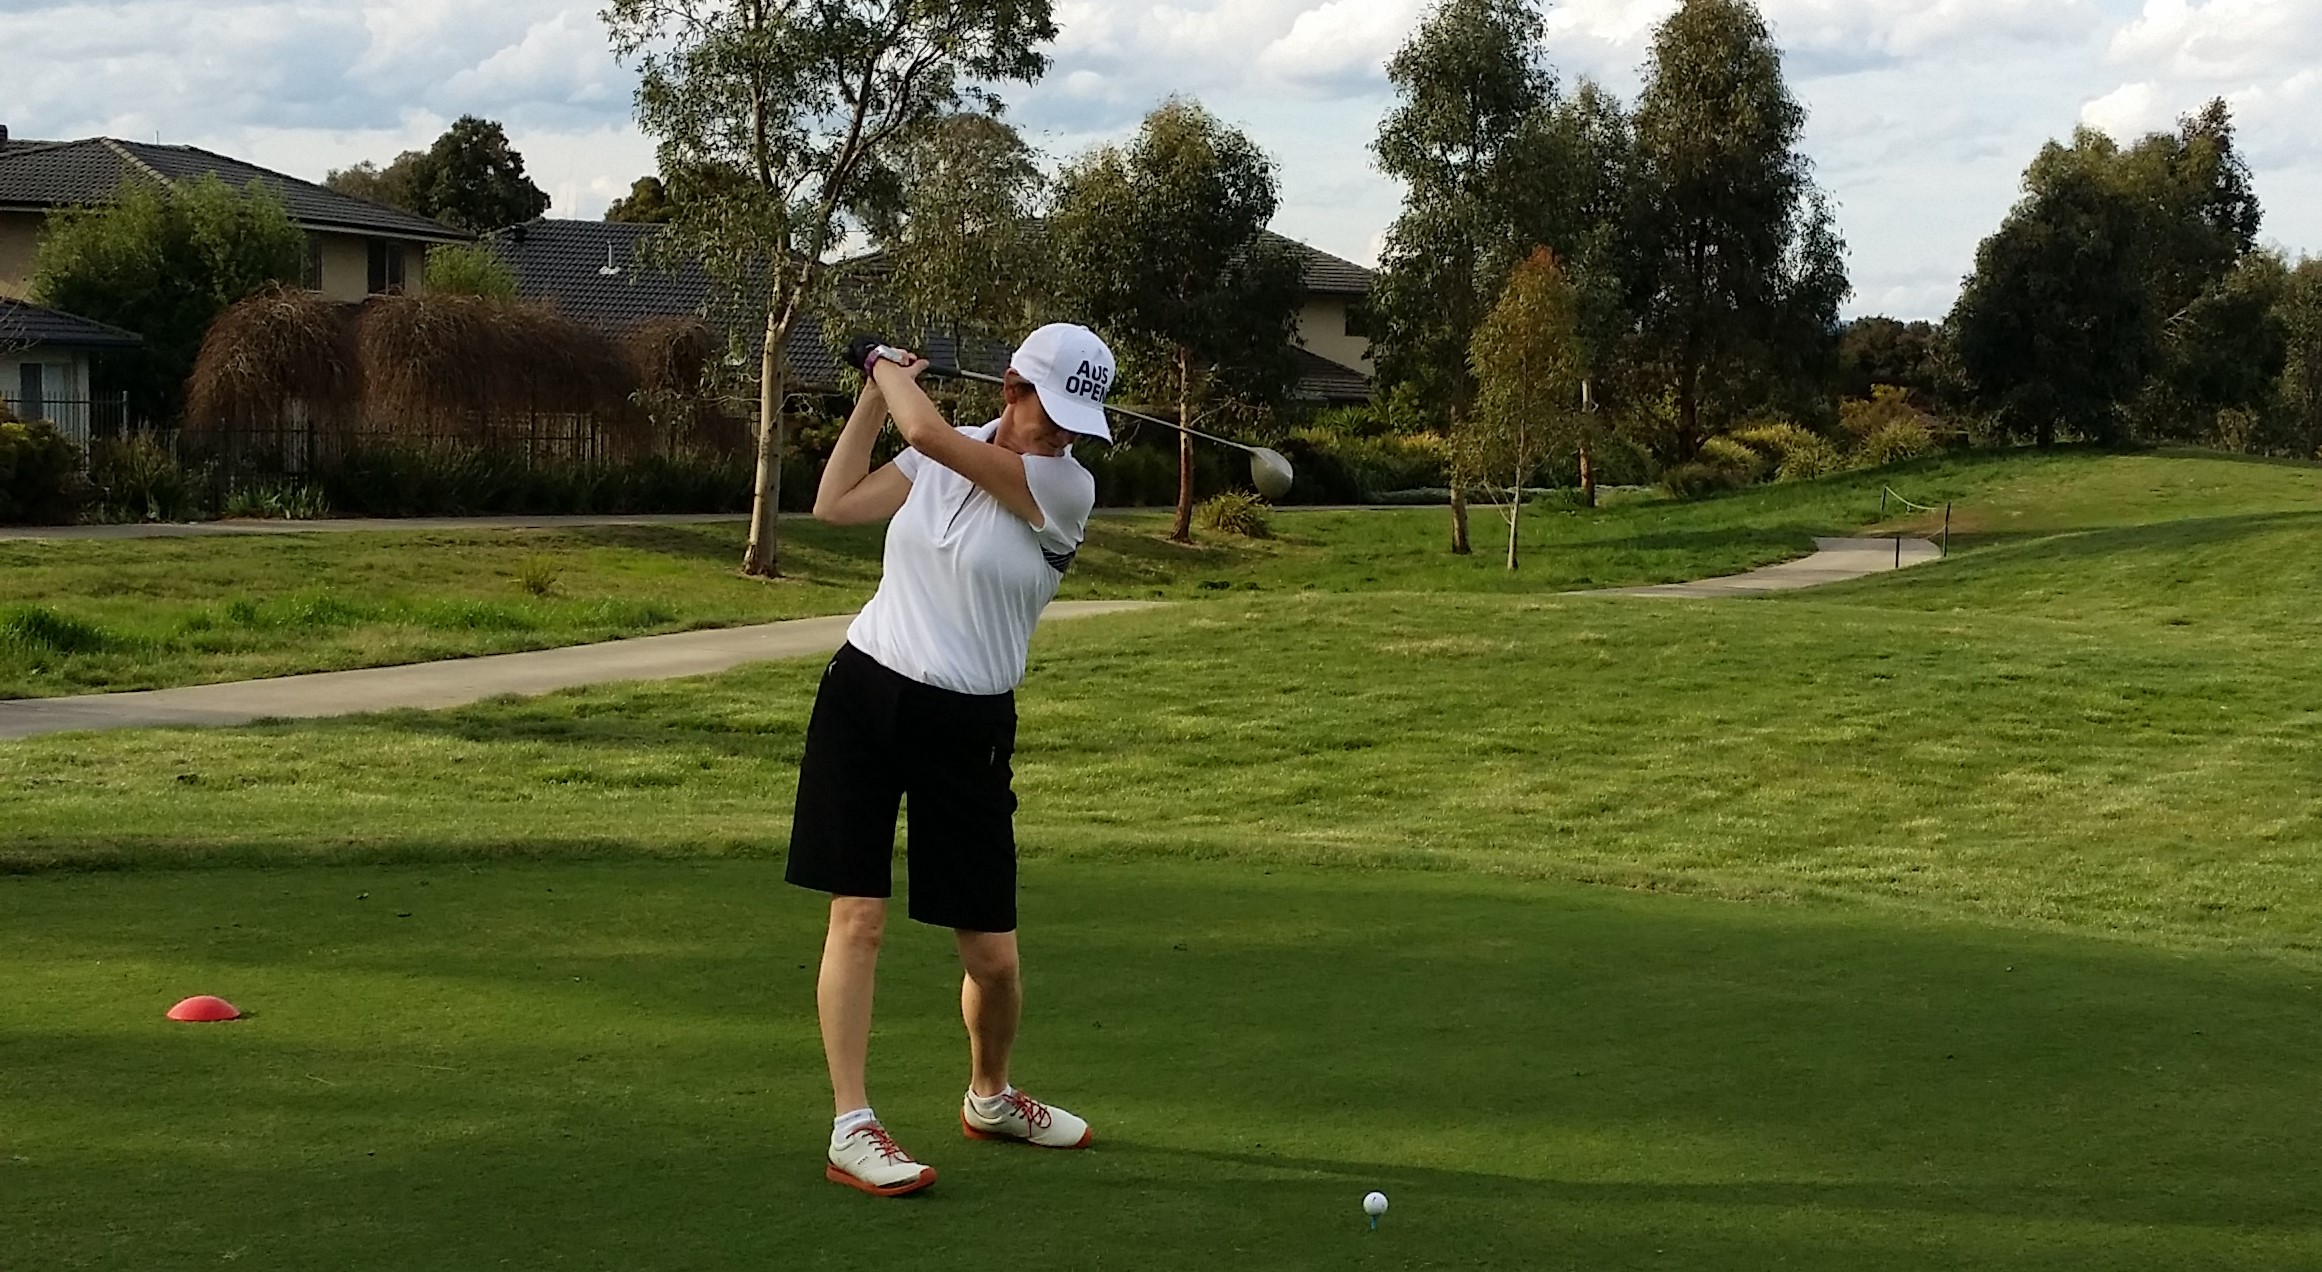 Golfing at the Sandhurst Golf Club in the outskirts of Melbourne.Can you spot what I'm doing incorrectly?